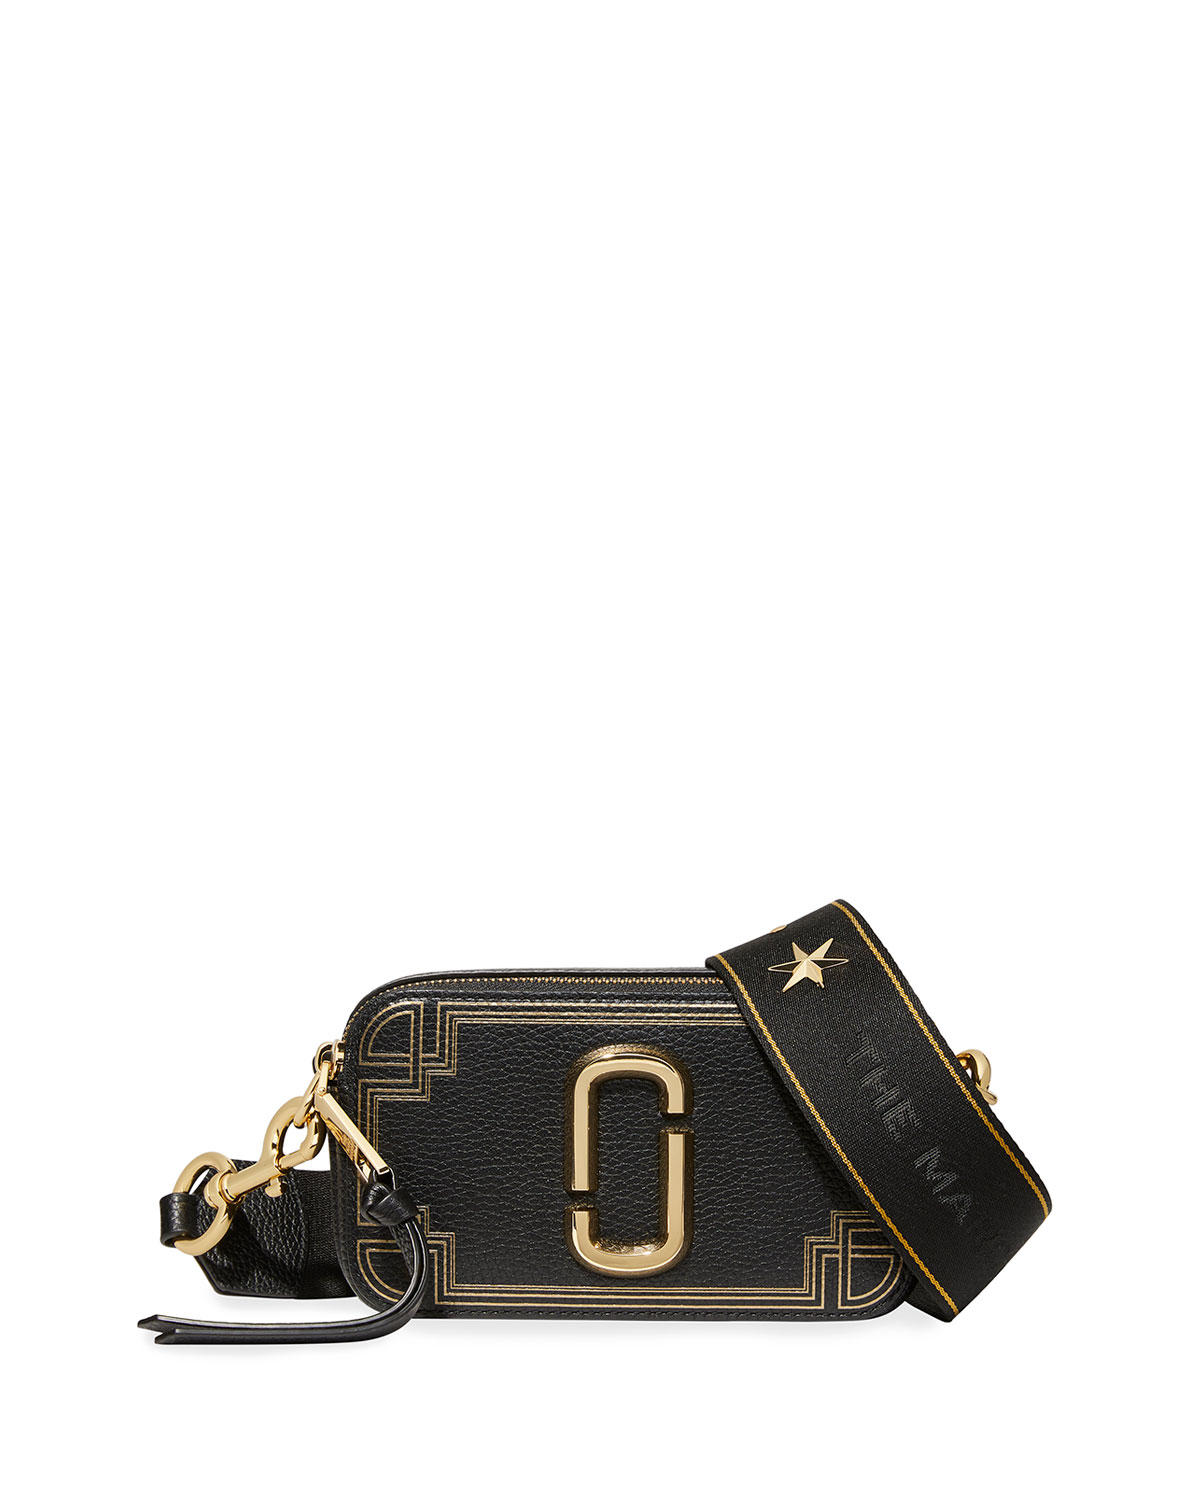 The Marc Jacobs THE SNAPSHOT GILDED LEATHER CAMERA CROSSBODY BAG